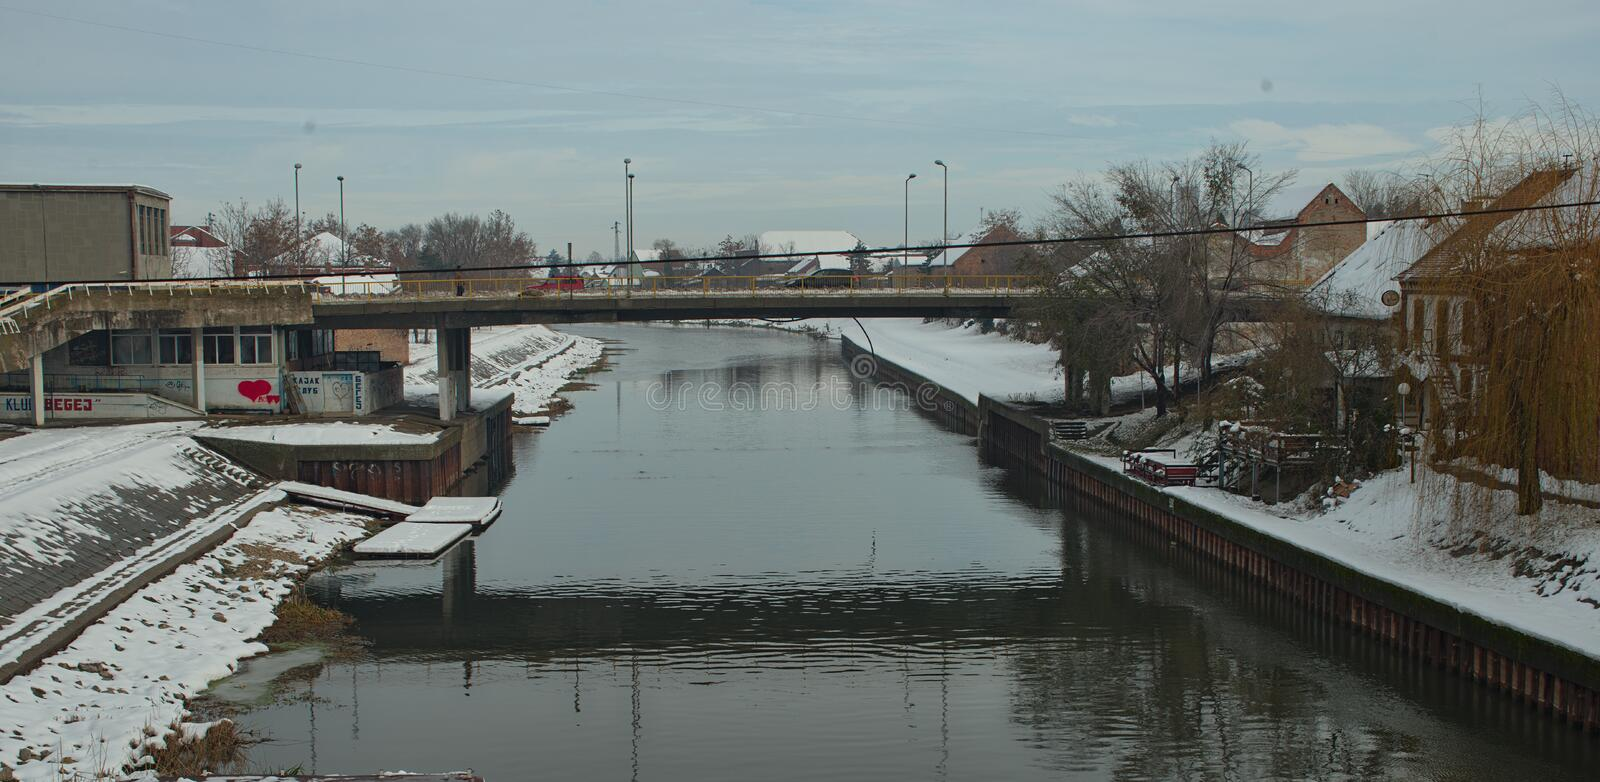 View on Begej river in Zrenjanin, Serbia during winter time.  royalty free stock photos